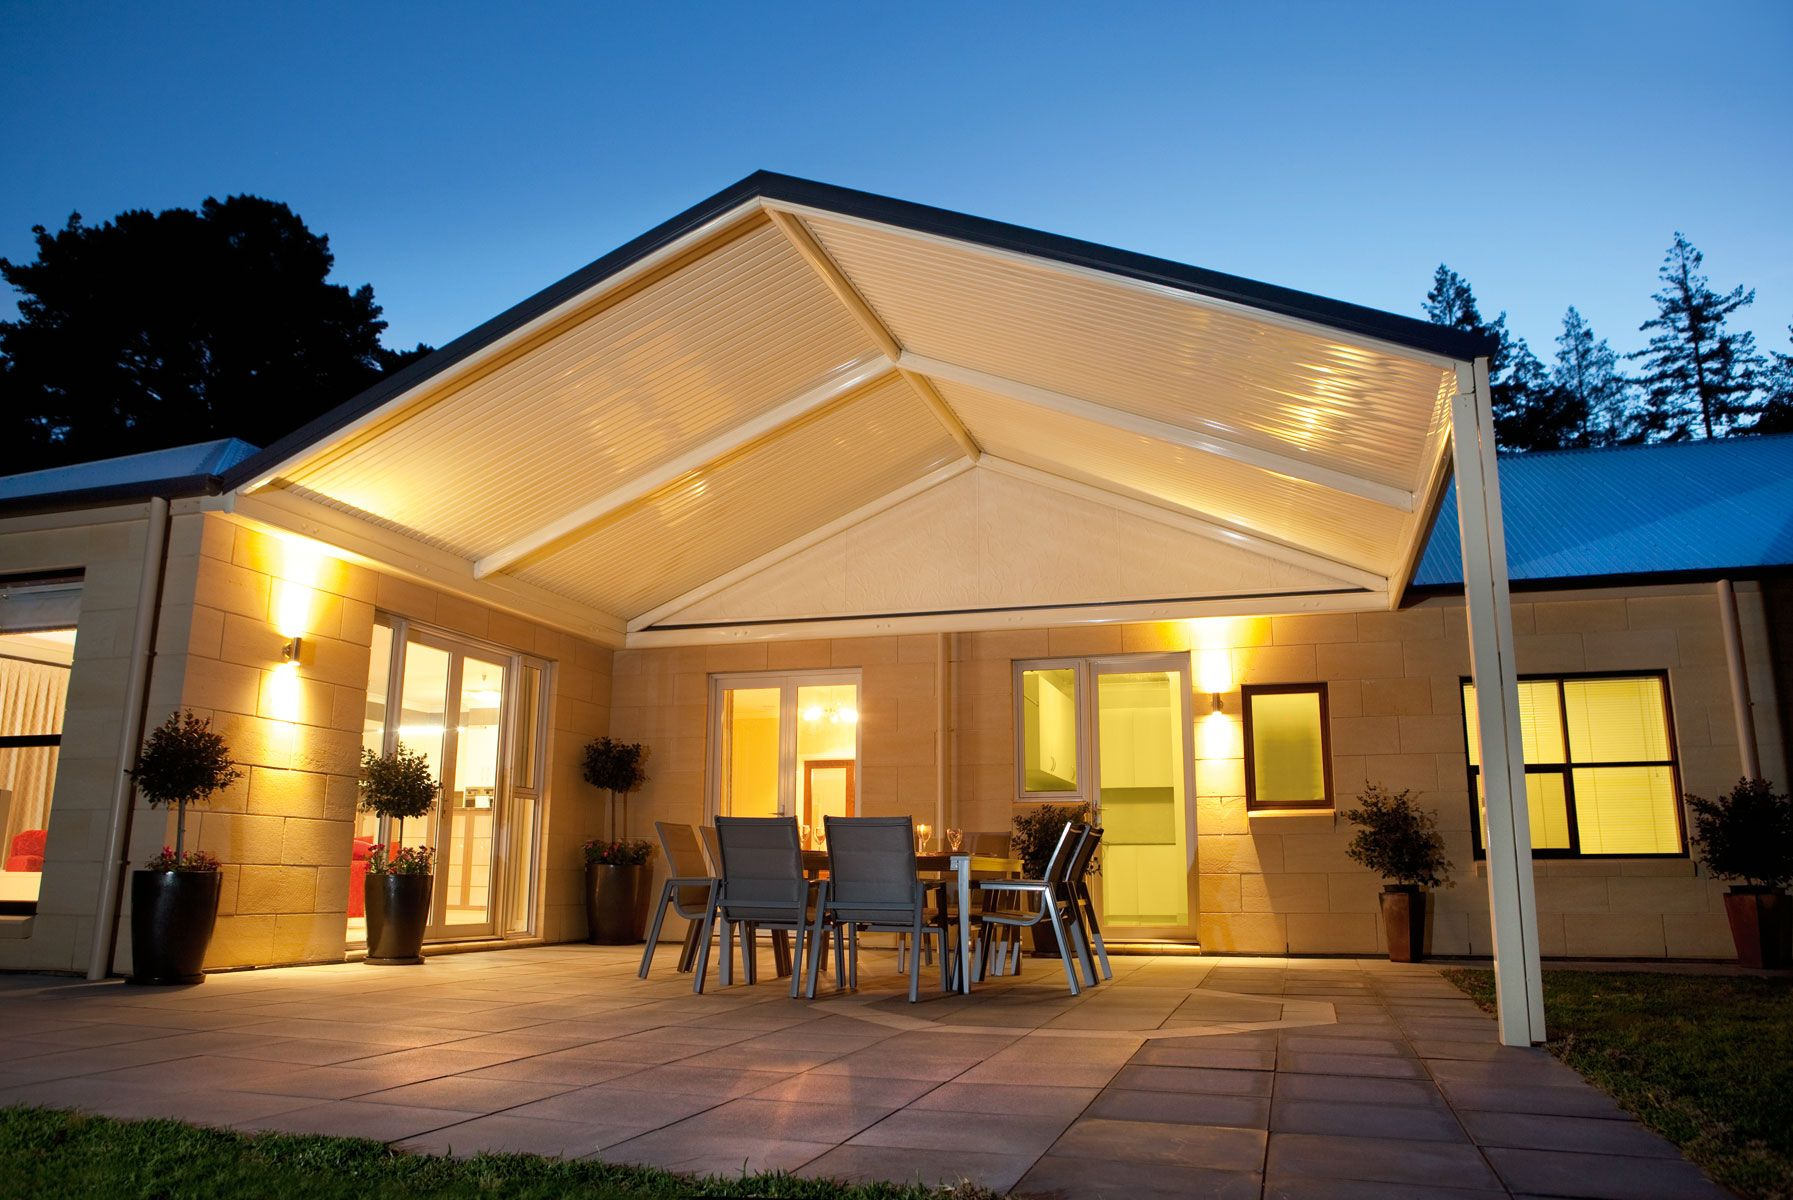 Outback Gable Stratco Porch Roof Styles Carport Designs Roof Styles